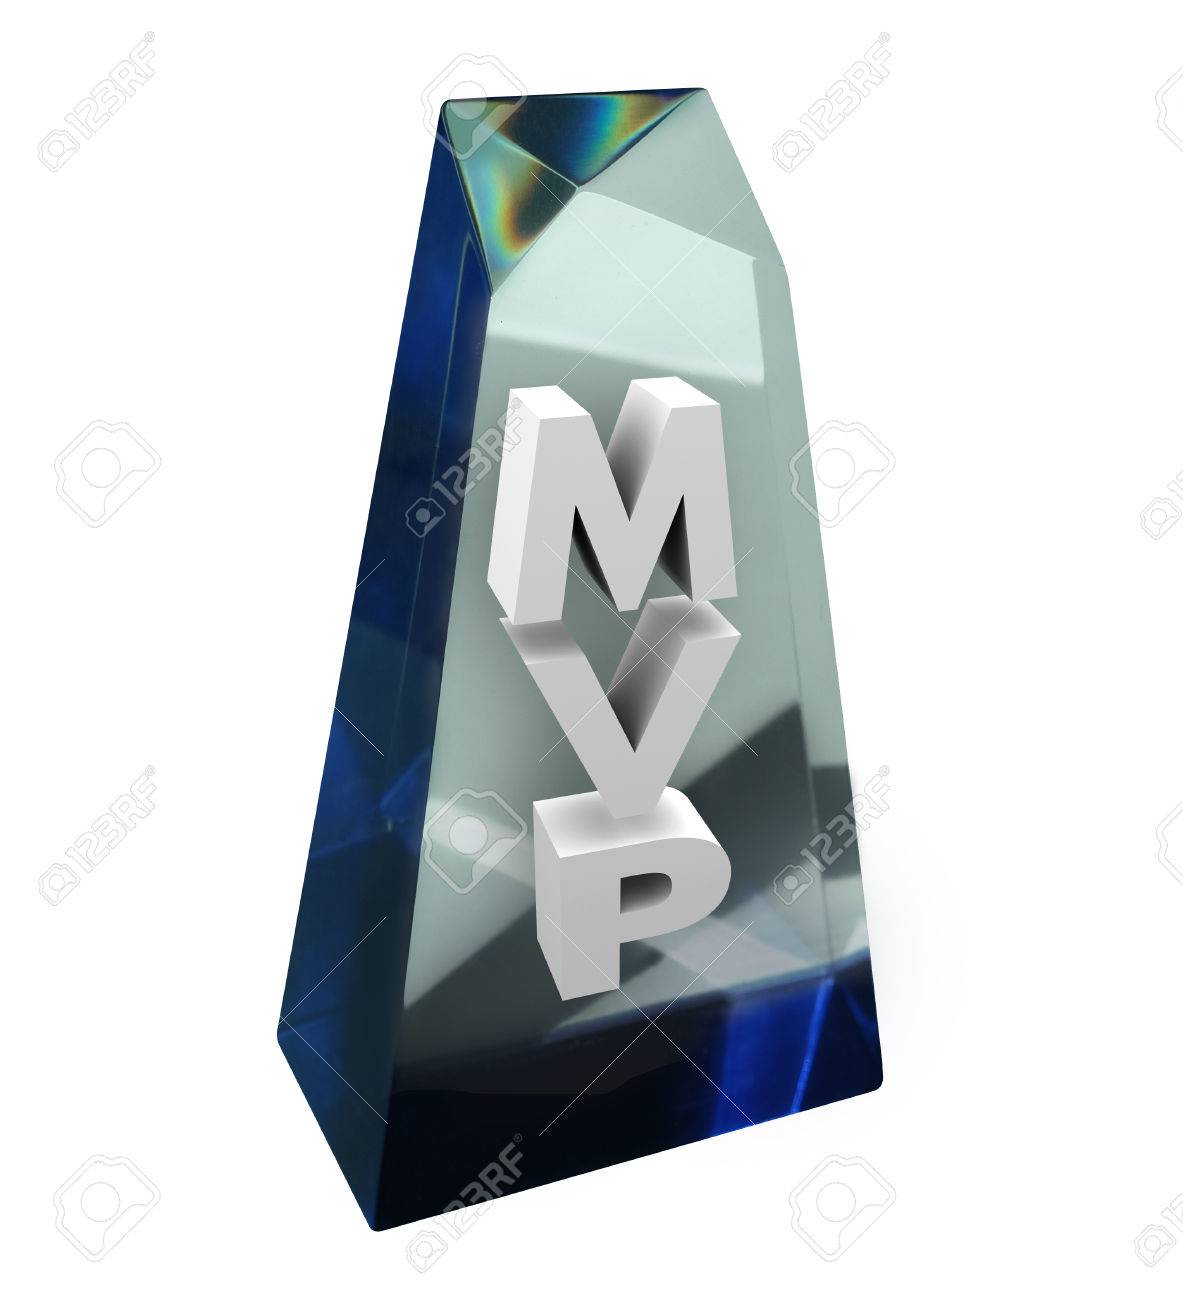 Most Valuable Player MVP Word Or Acronym In A Clear Award Trophy Recognizing The Contributions